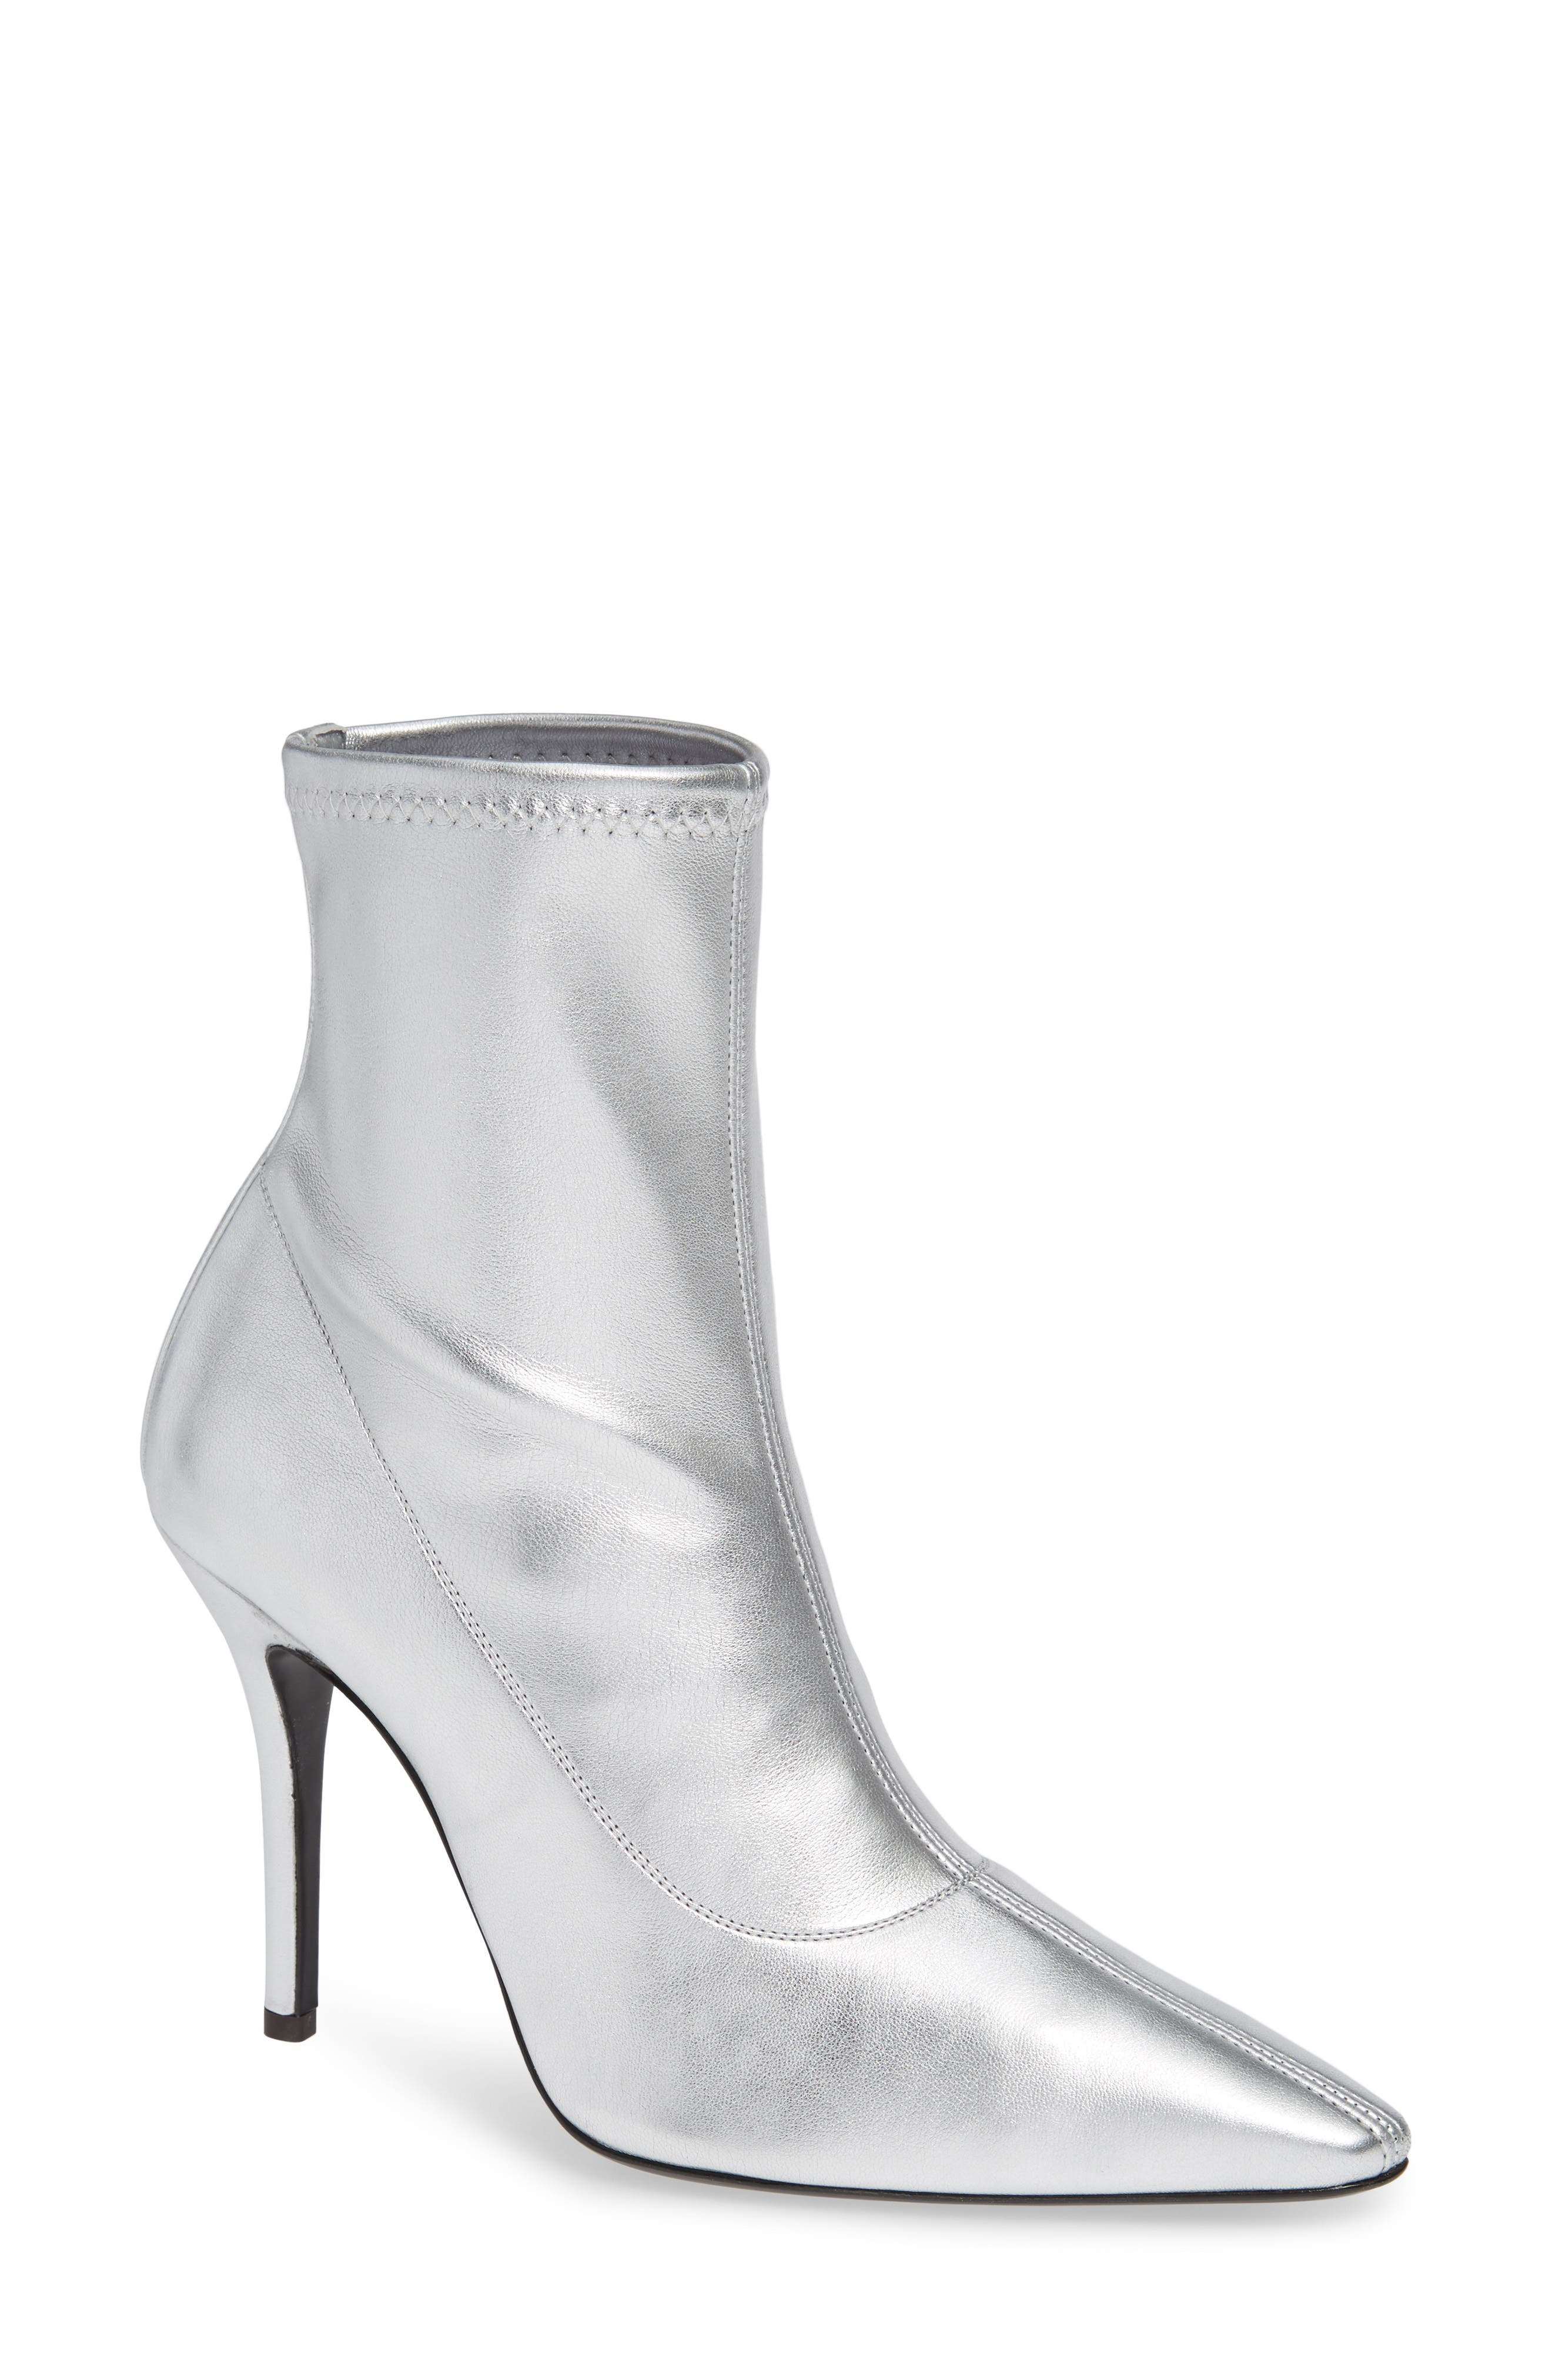 Metallic Stretch-Leather Booties in Silver